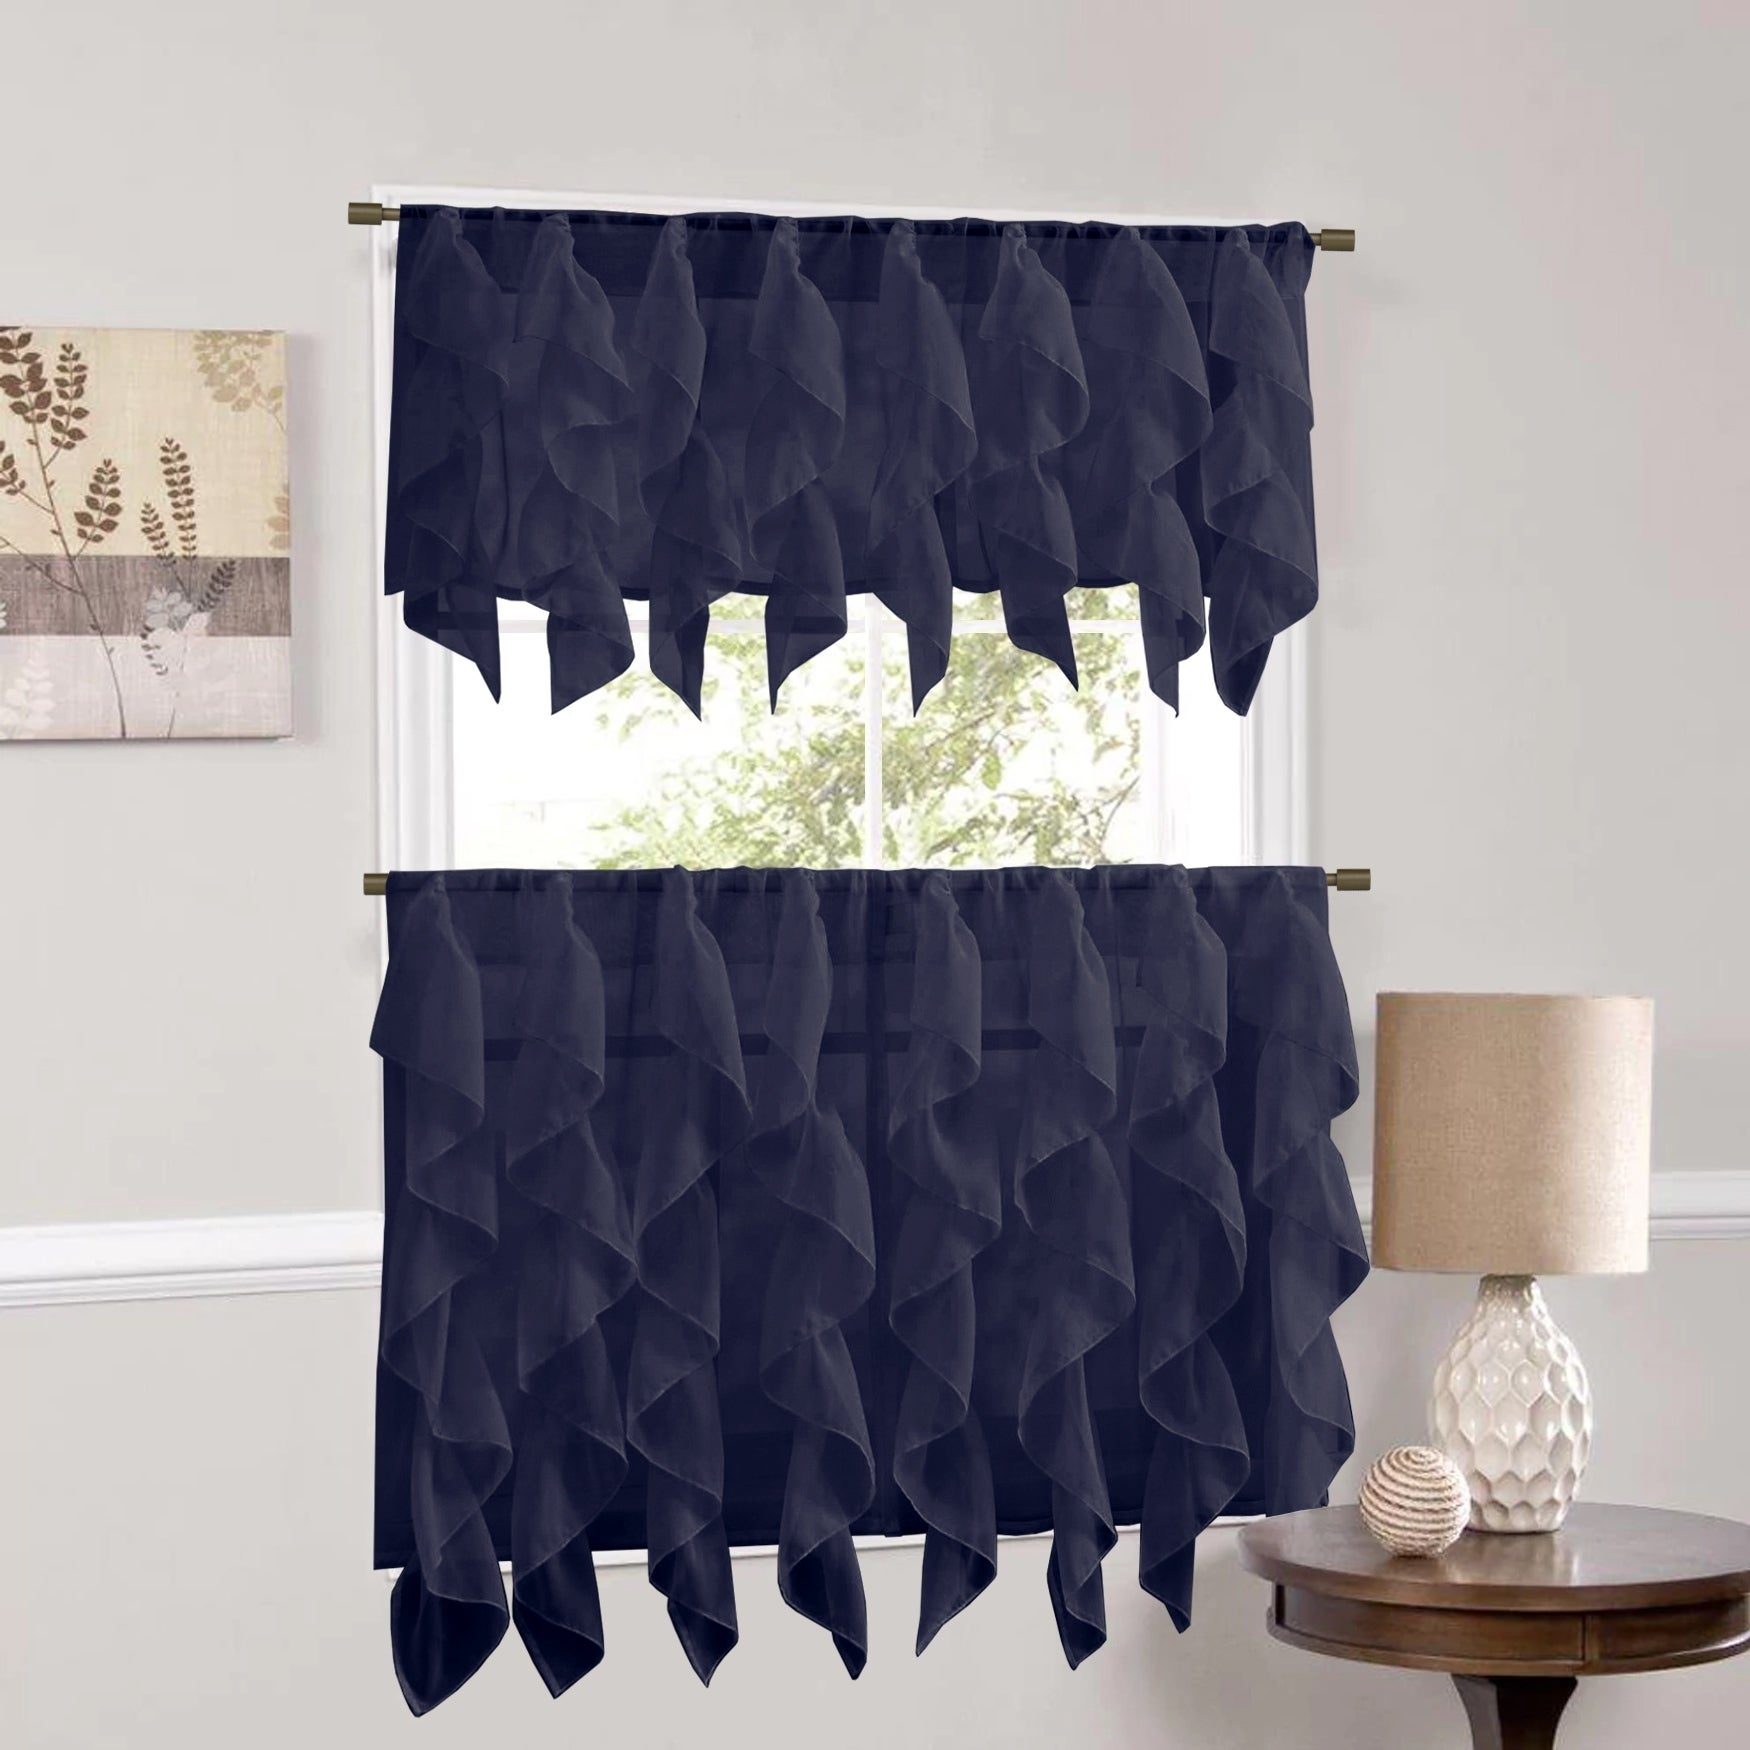 Sweet Home Collection Navy Vertical Ruffled Waterfall Valance And Curtain Tiers Inside Silver Vertical Ruffled Waterfall Valance And Curtain Tiers (View 11 of 20)